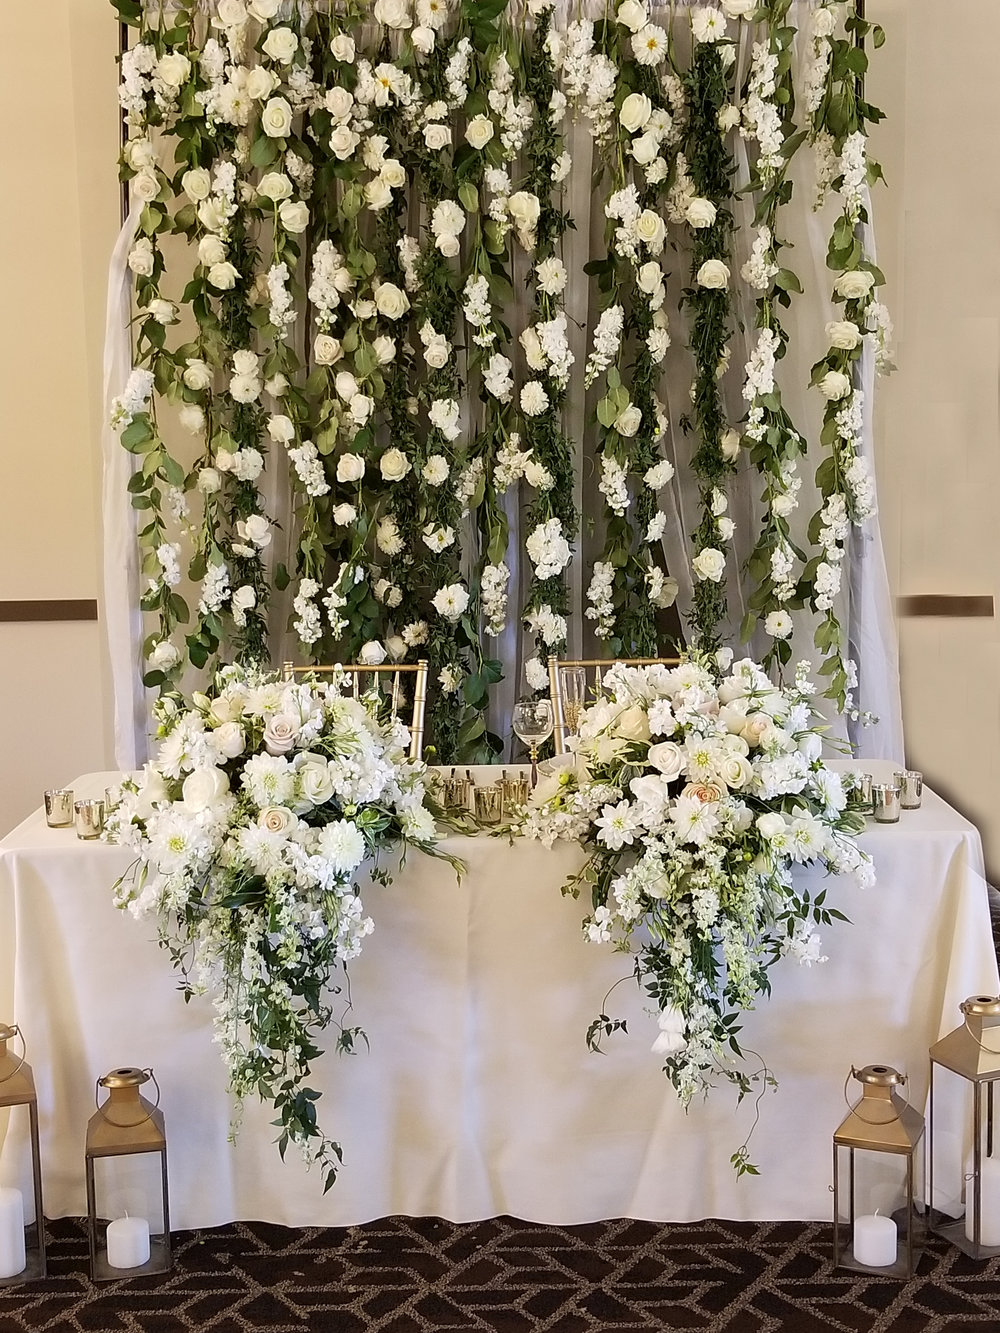 2018-07-07 Flower wall sweetheart table backdrop4.jpg